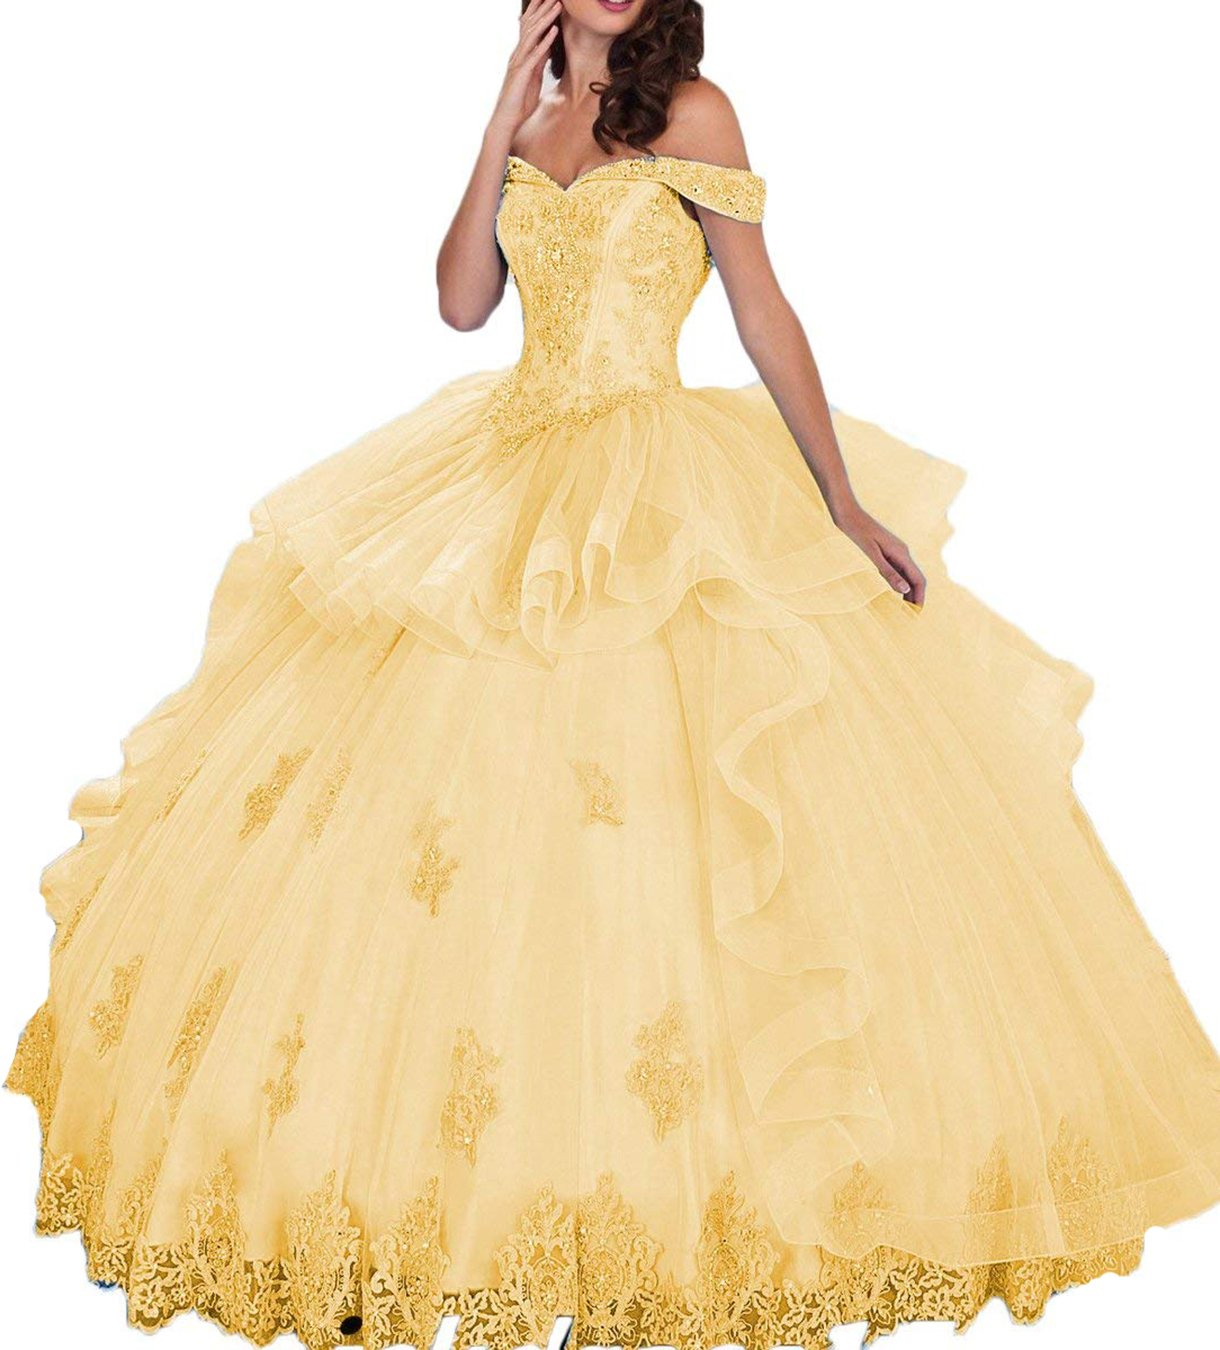 Blink Tendone credito  UGLY Women's Off Shoulder Pleated Quinceanera Dresses Beaded Applique Ball  Gowns UG008 Size 10 Gold